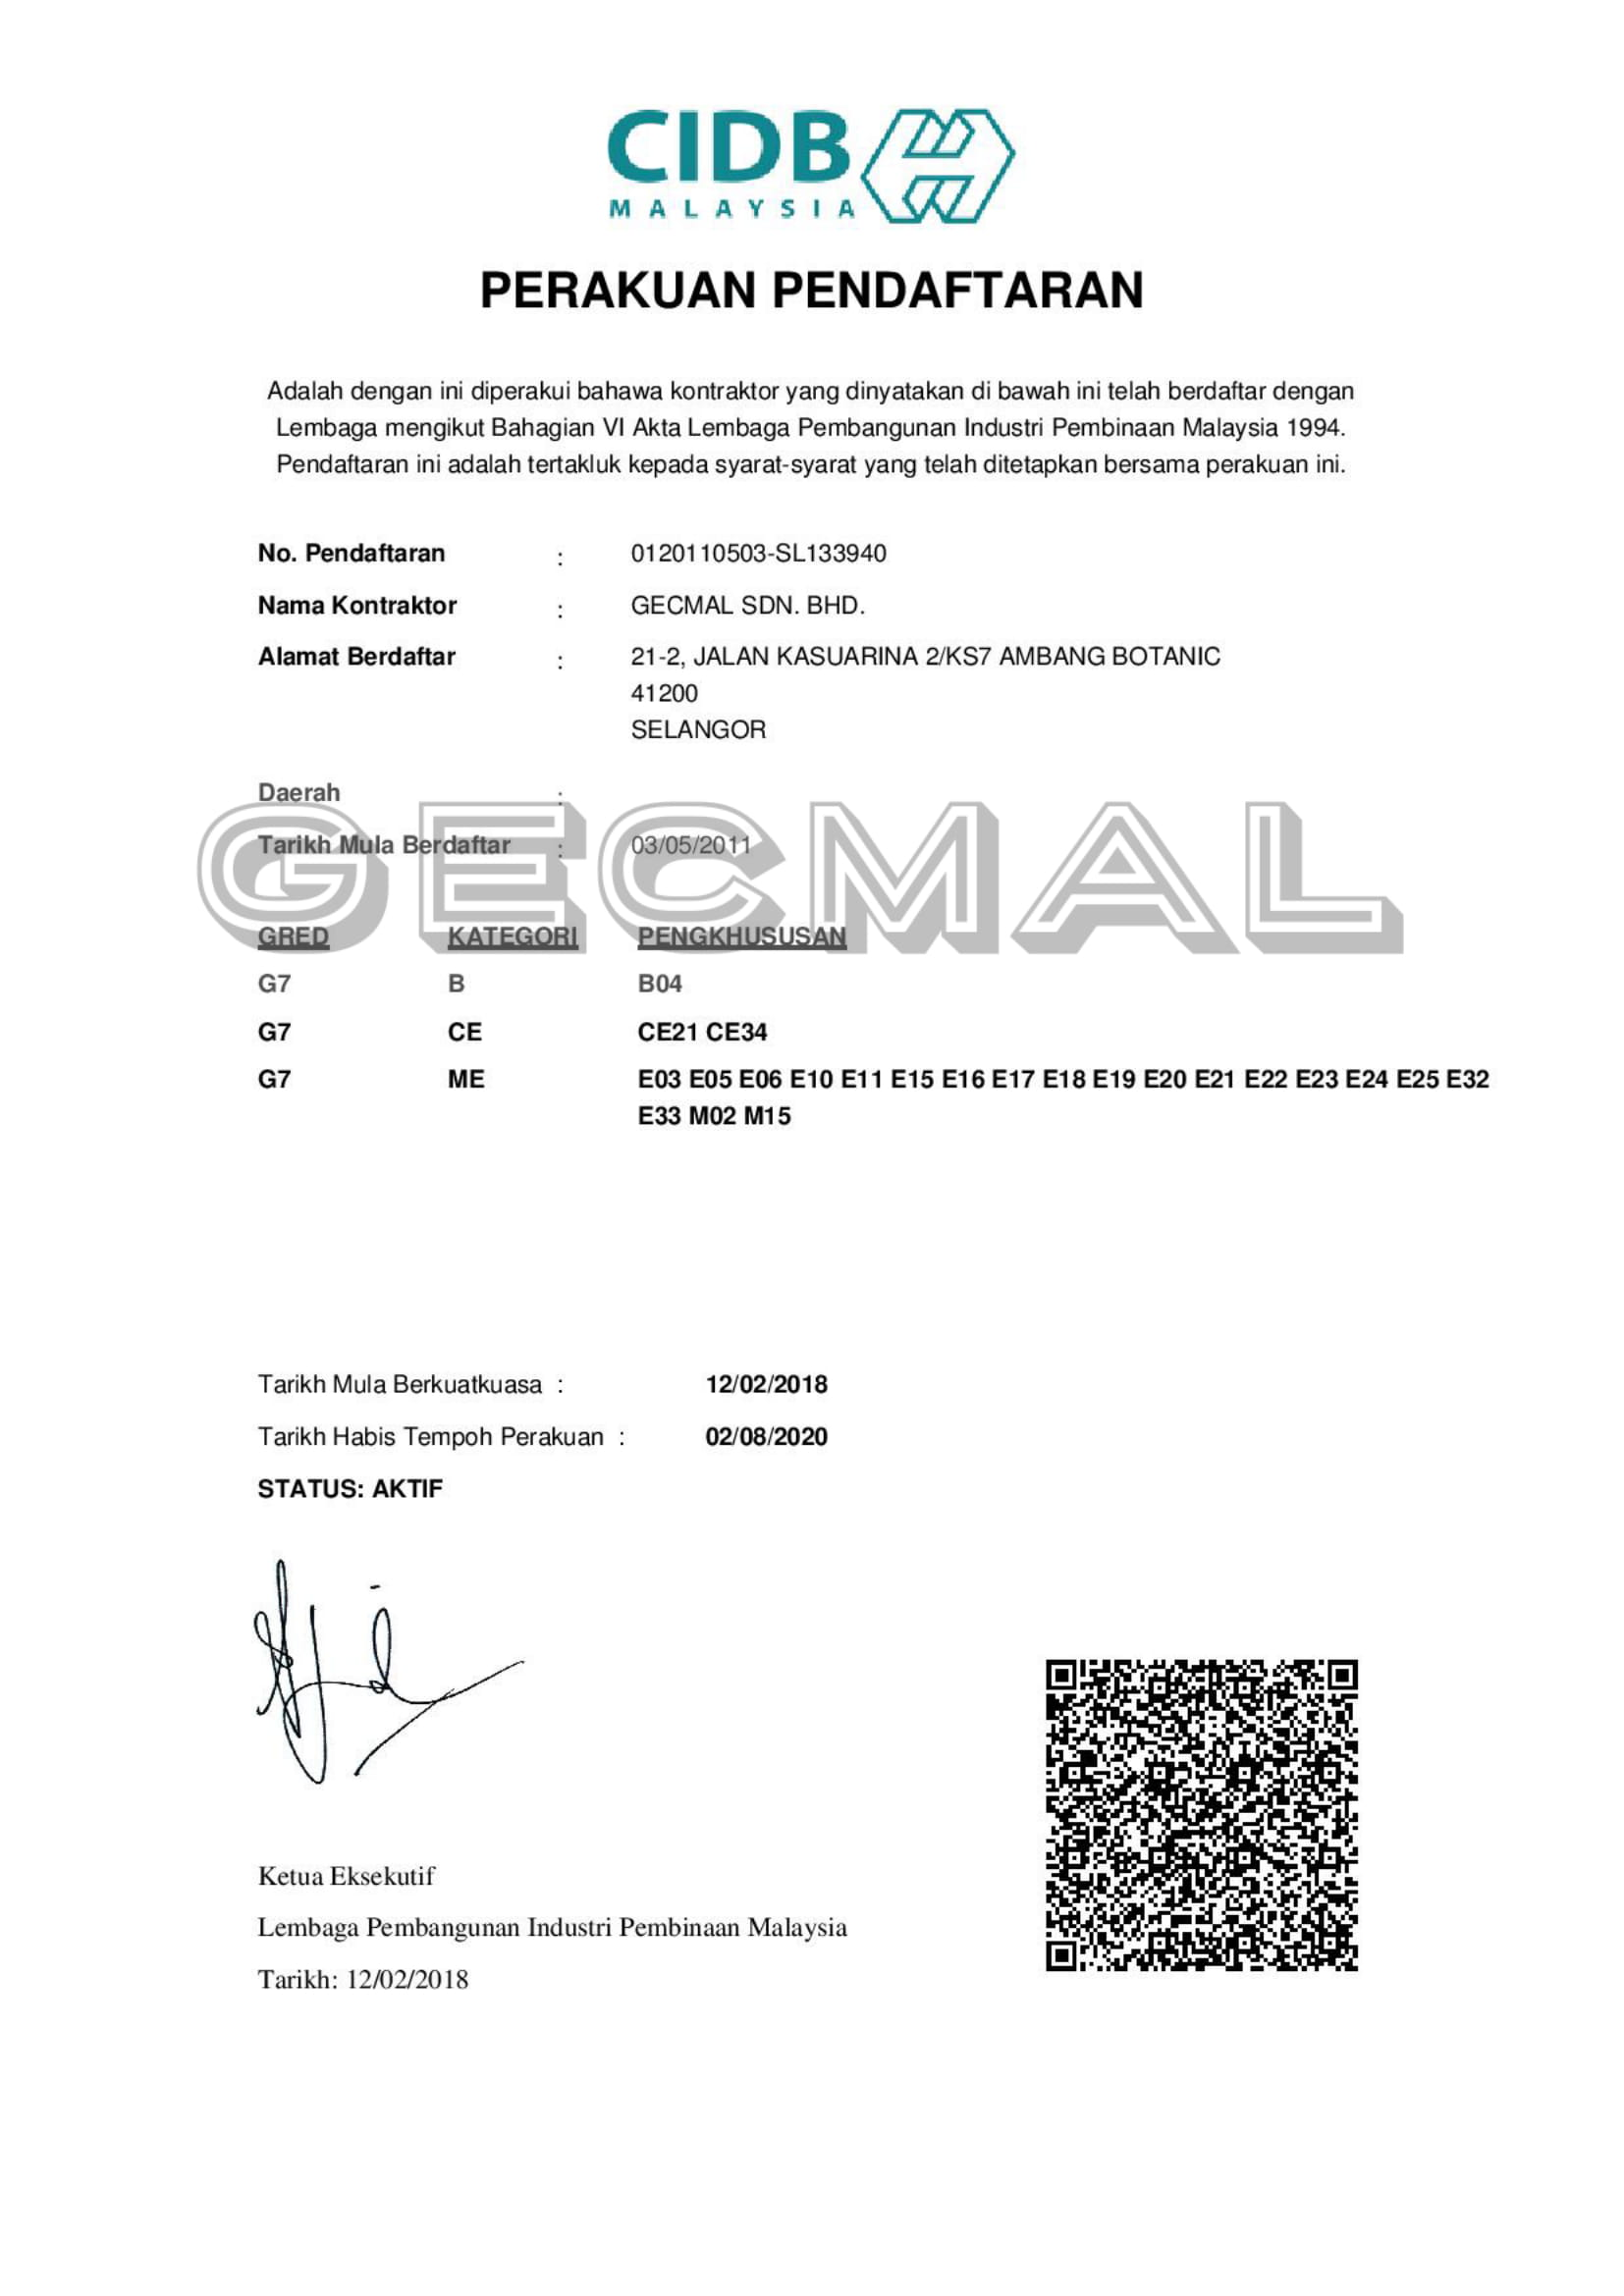 Our certifications gecmal sdn bhd our certifications ccuart Gallery